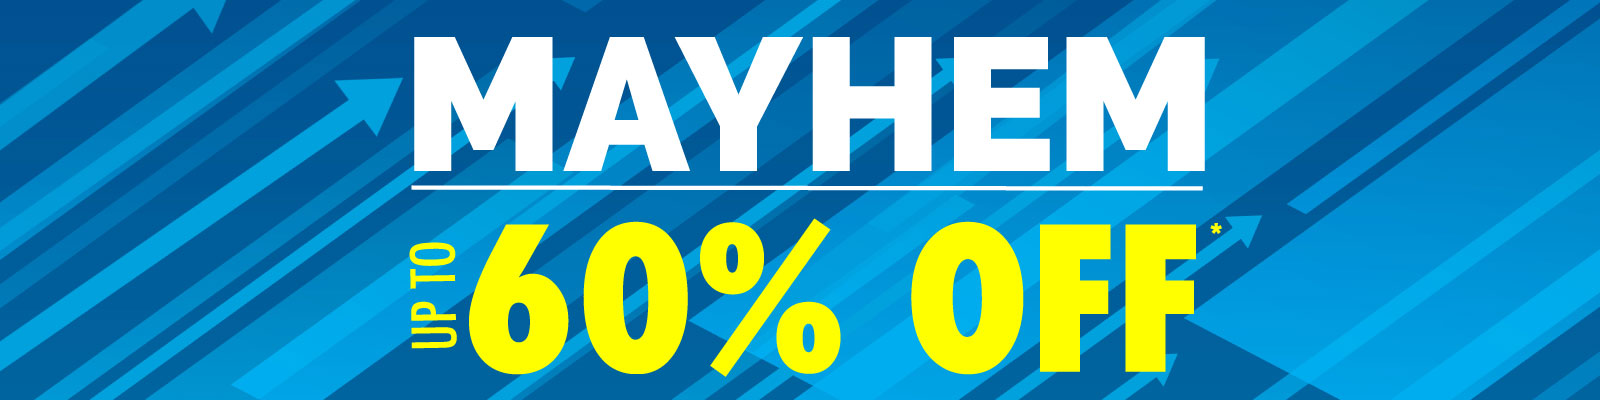 Mayhem - Up To 60% Off